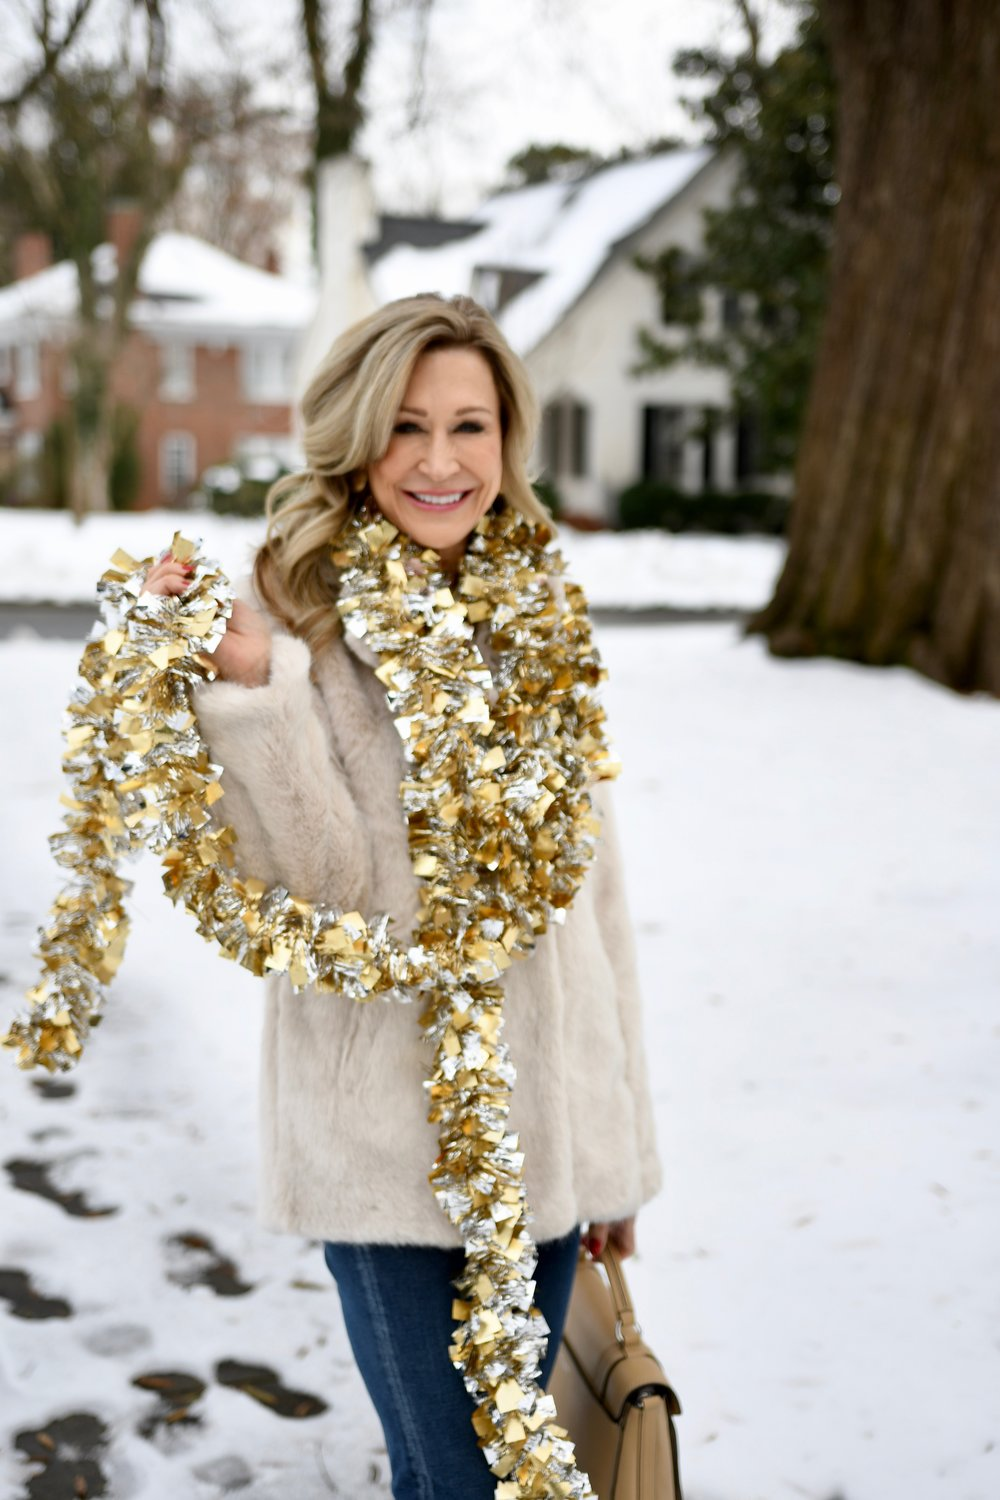 Sparkling in the snow - Crazy Blonde Style